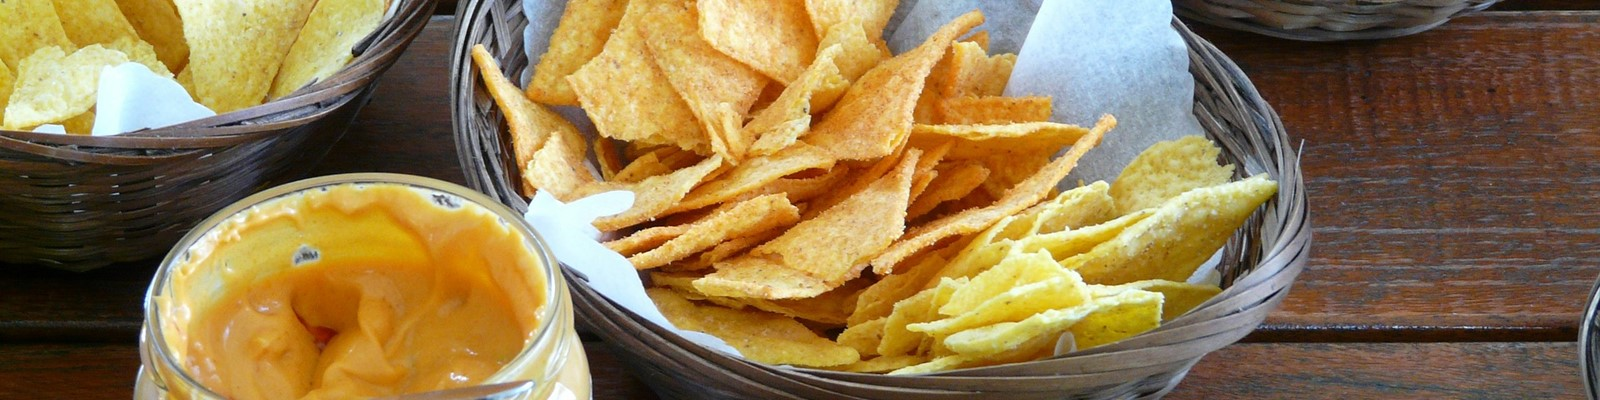 Tortilla Chip 58709 1920